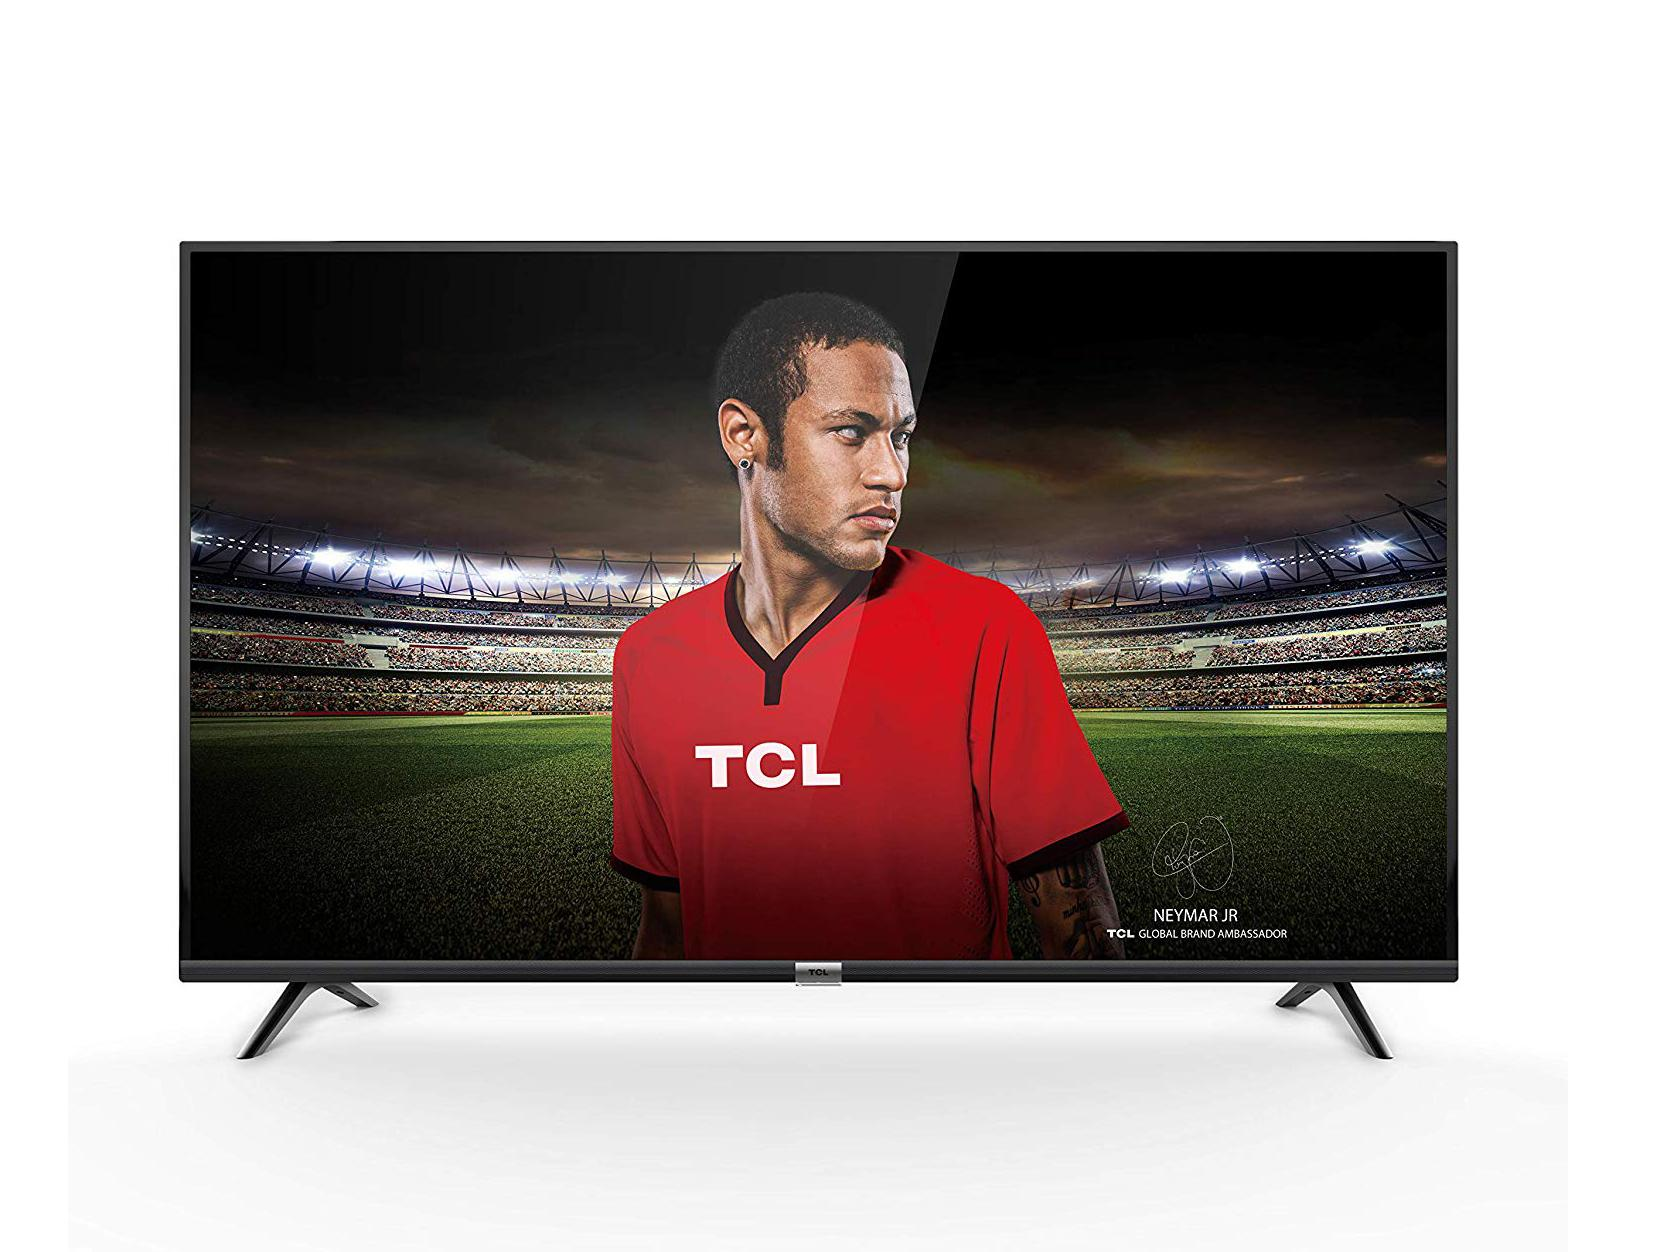 Prime Day tech deals 2019 From TVs to smartphones